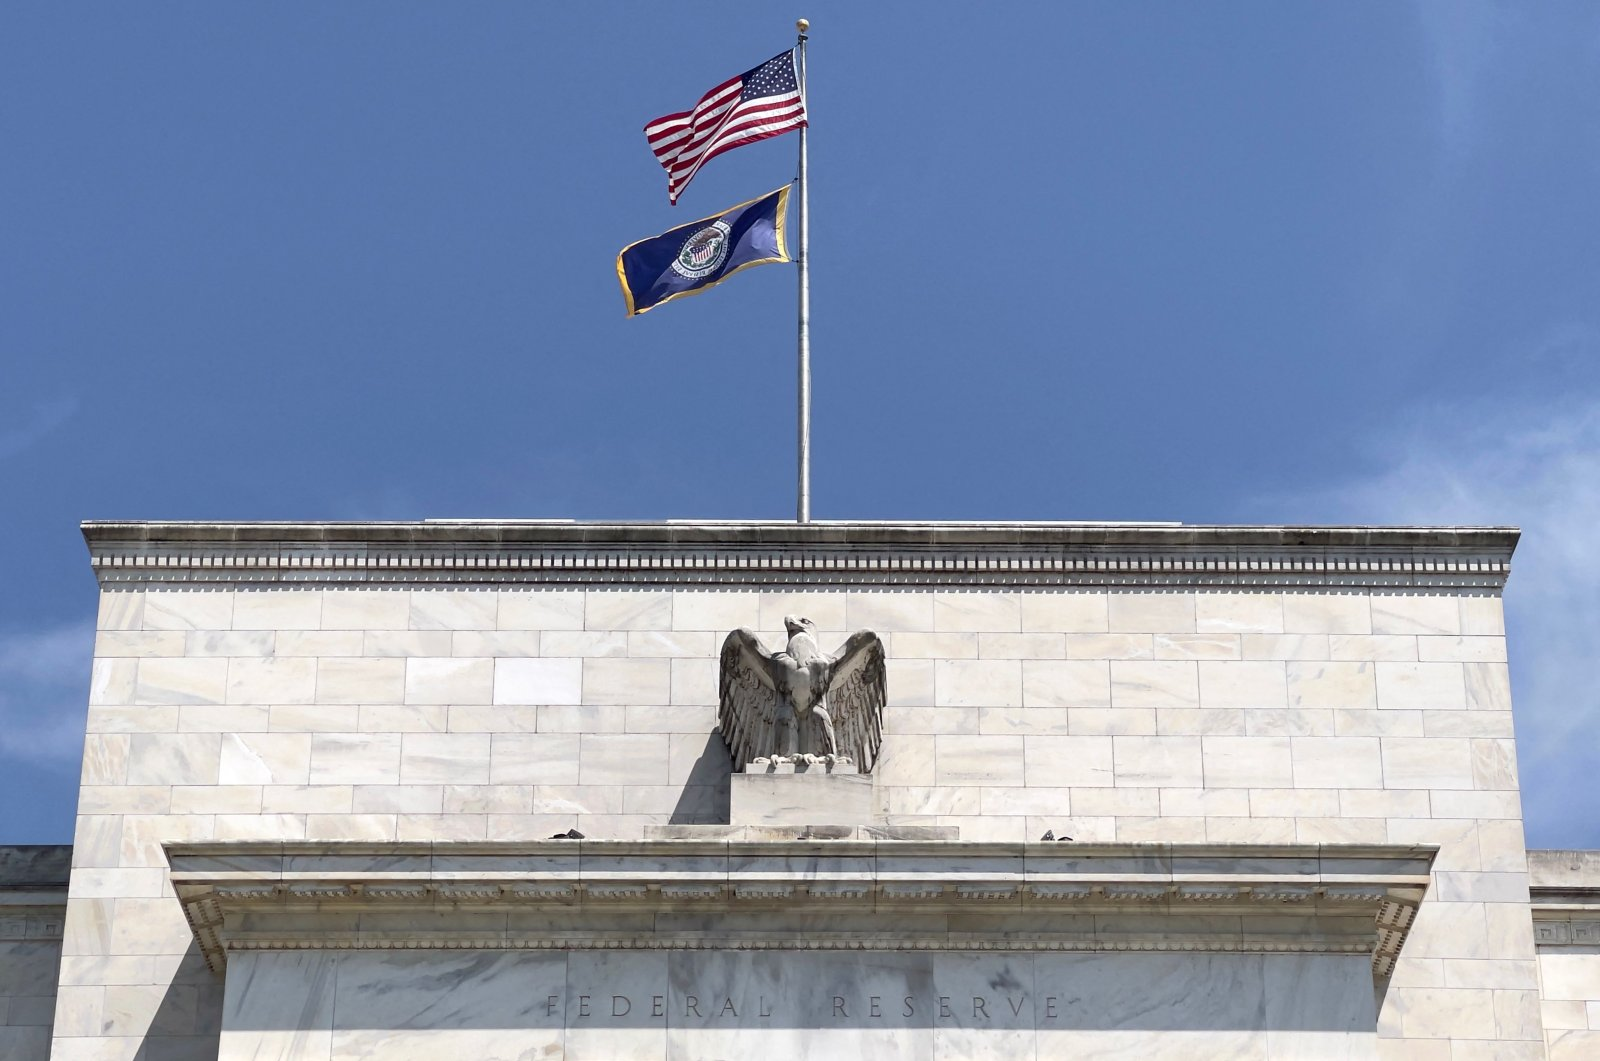 This file photo shows the Federal Reserve building in Washington, D.C., U.S., Aug. 6, 2021. (AFP Photo)